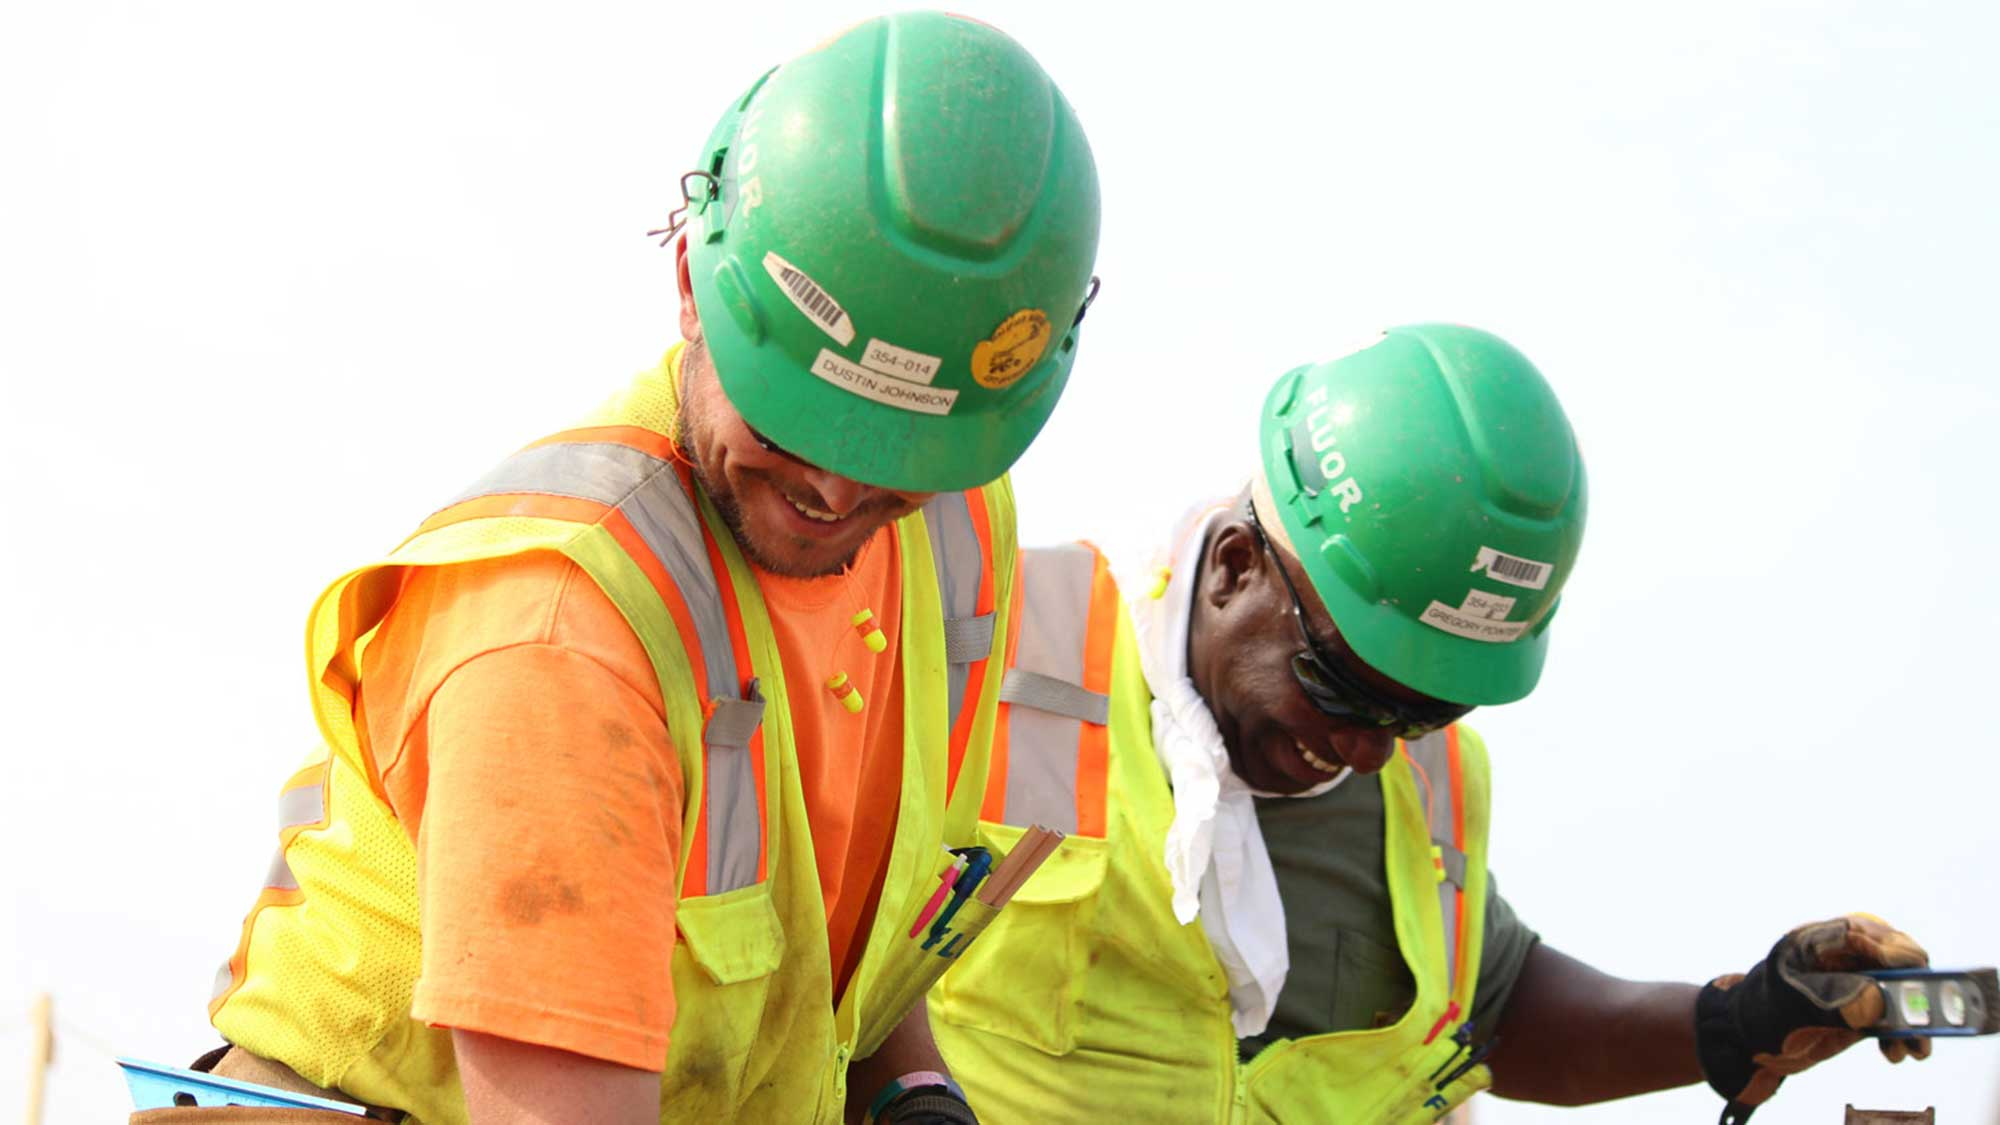 Apprenticeship: The Buzz Word That May Very Well Help the Construction Industry